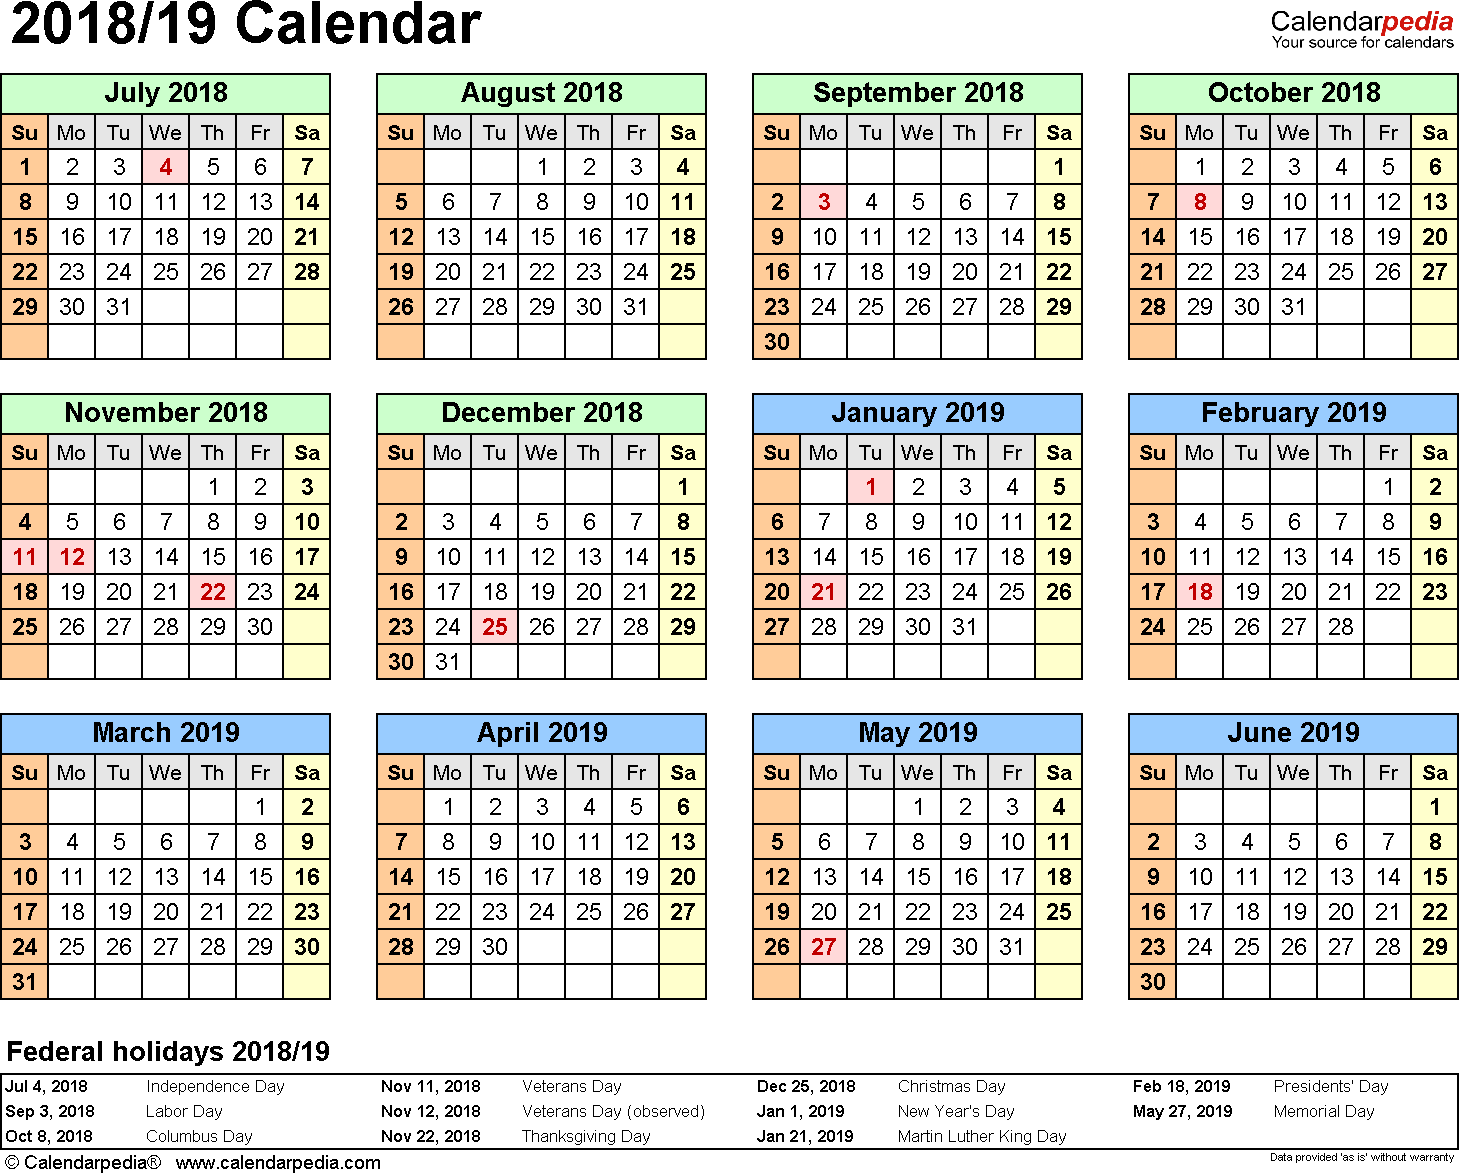 Template 3: 2018/2019 split year/half year calendar, for Microsoft Word (.docx), landscape orientation, year at a glance, 1 page